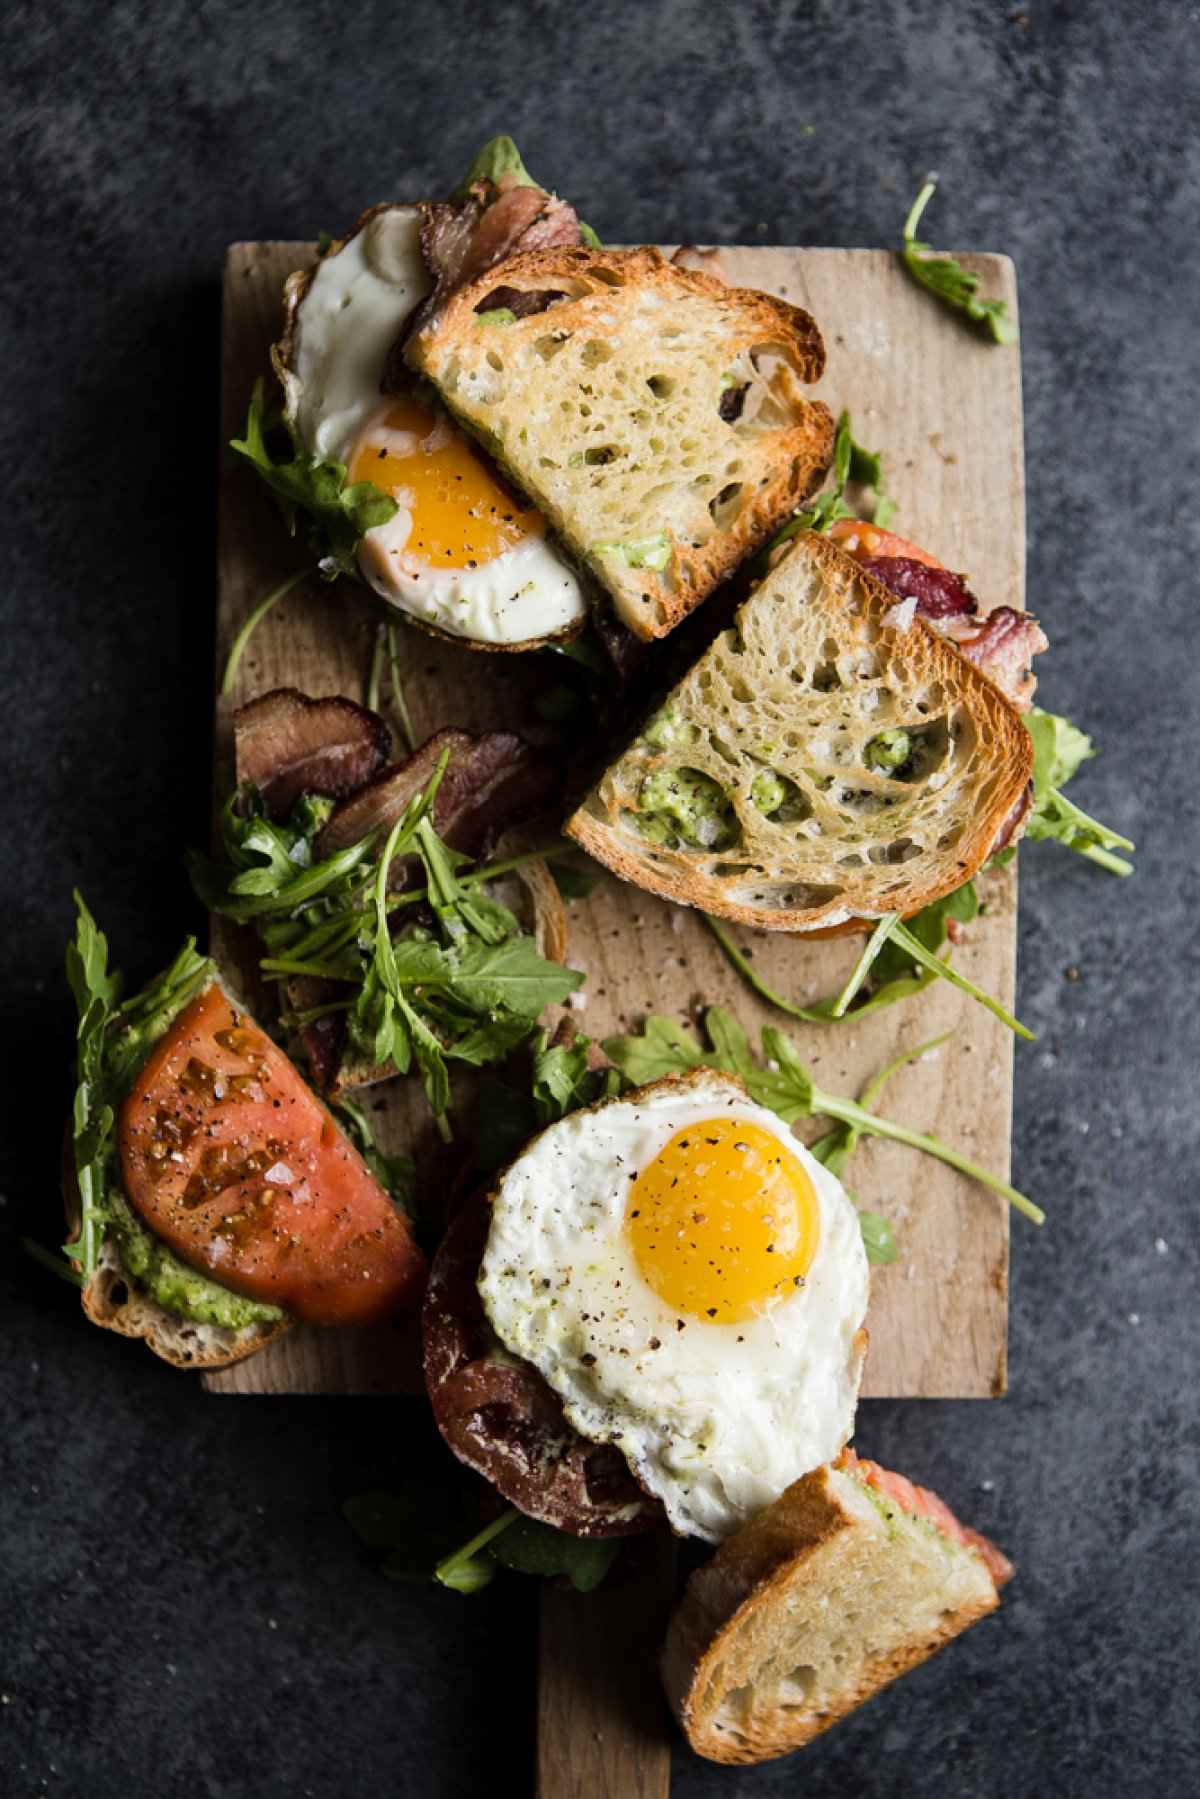 The 9 Best Sandwich Recipes for Making Lunch the Standout Meal of the Day